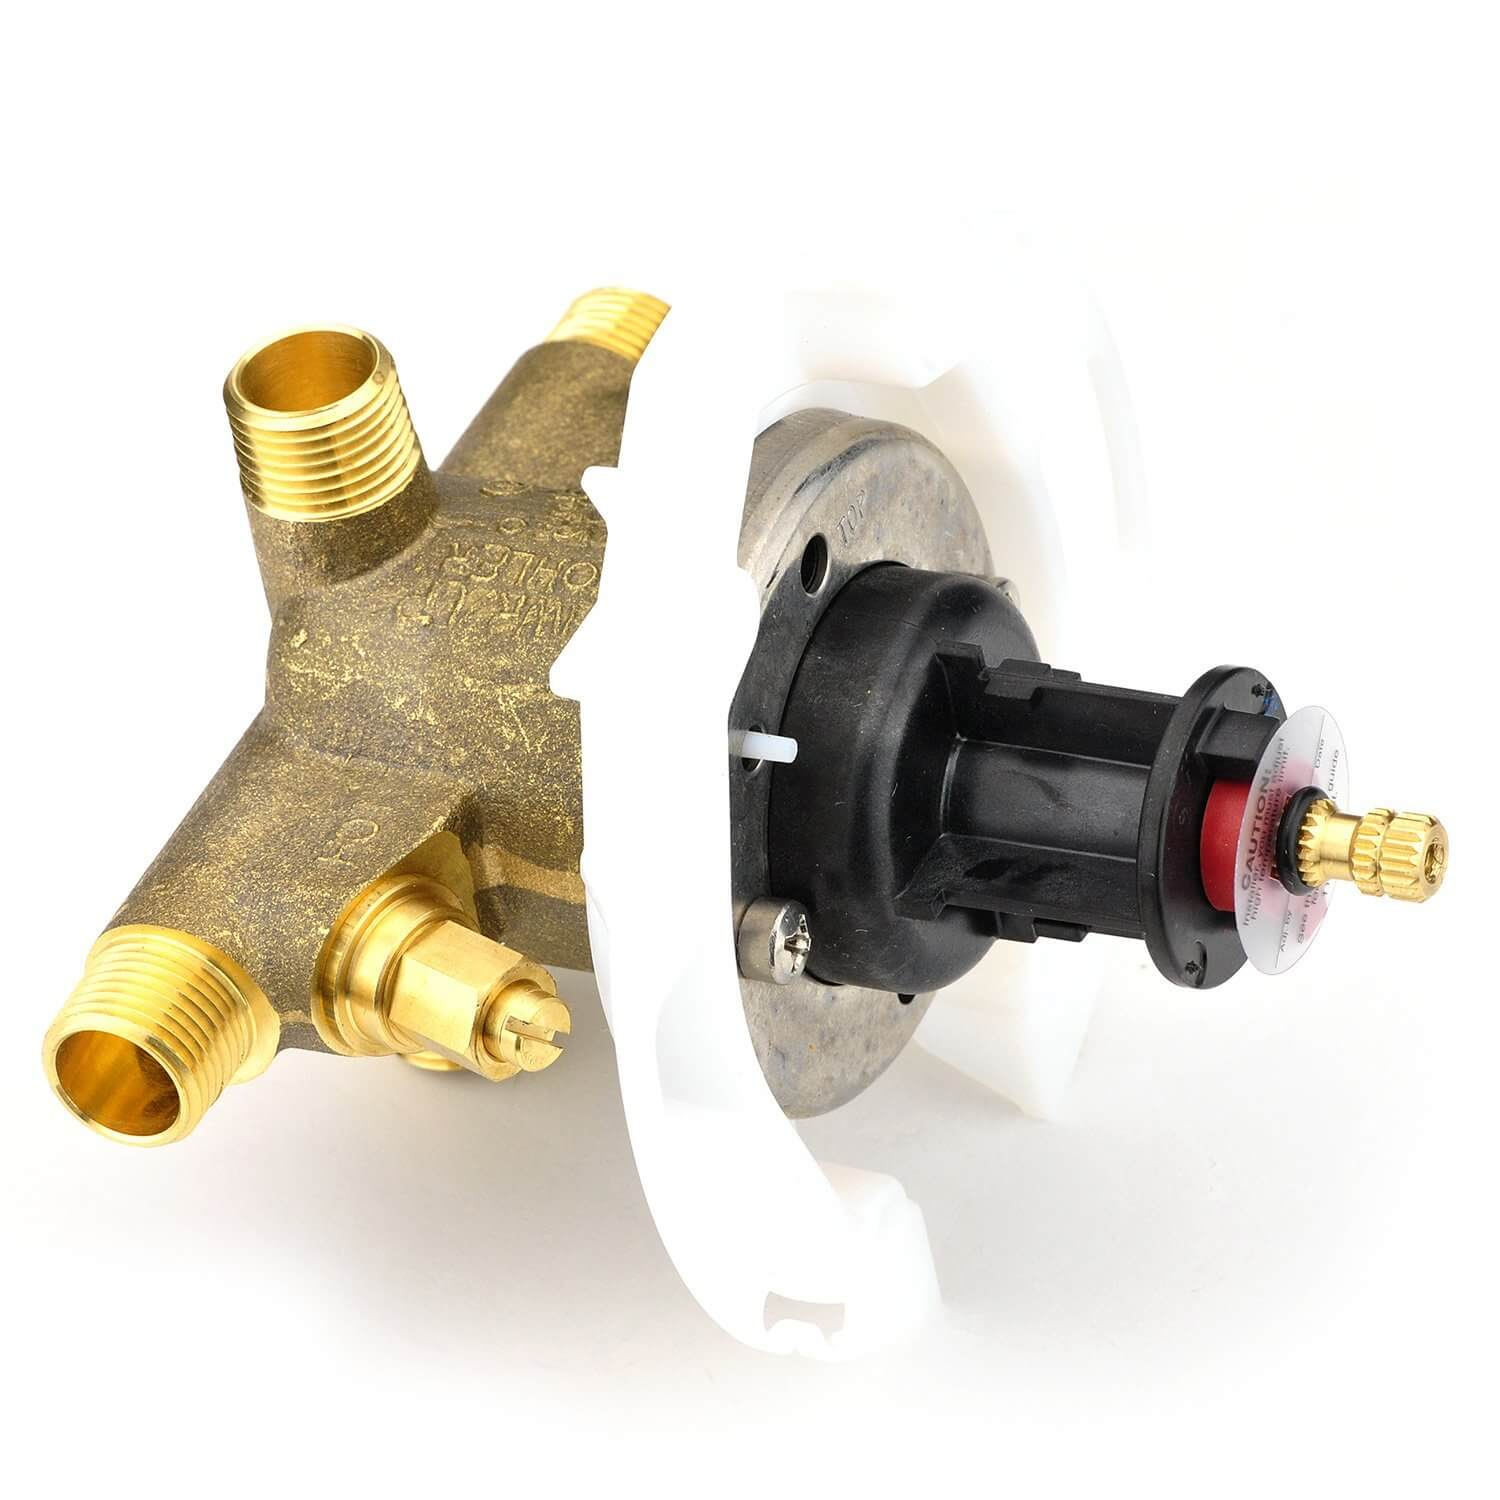 p brass valves master the shower valve mixing diverter kohler or home way na k